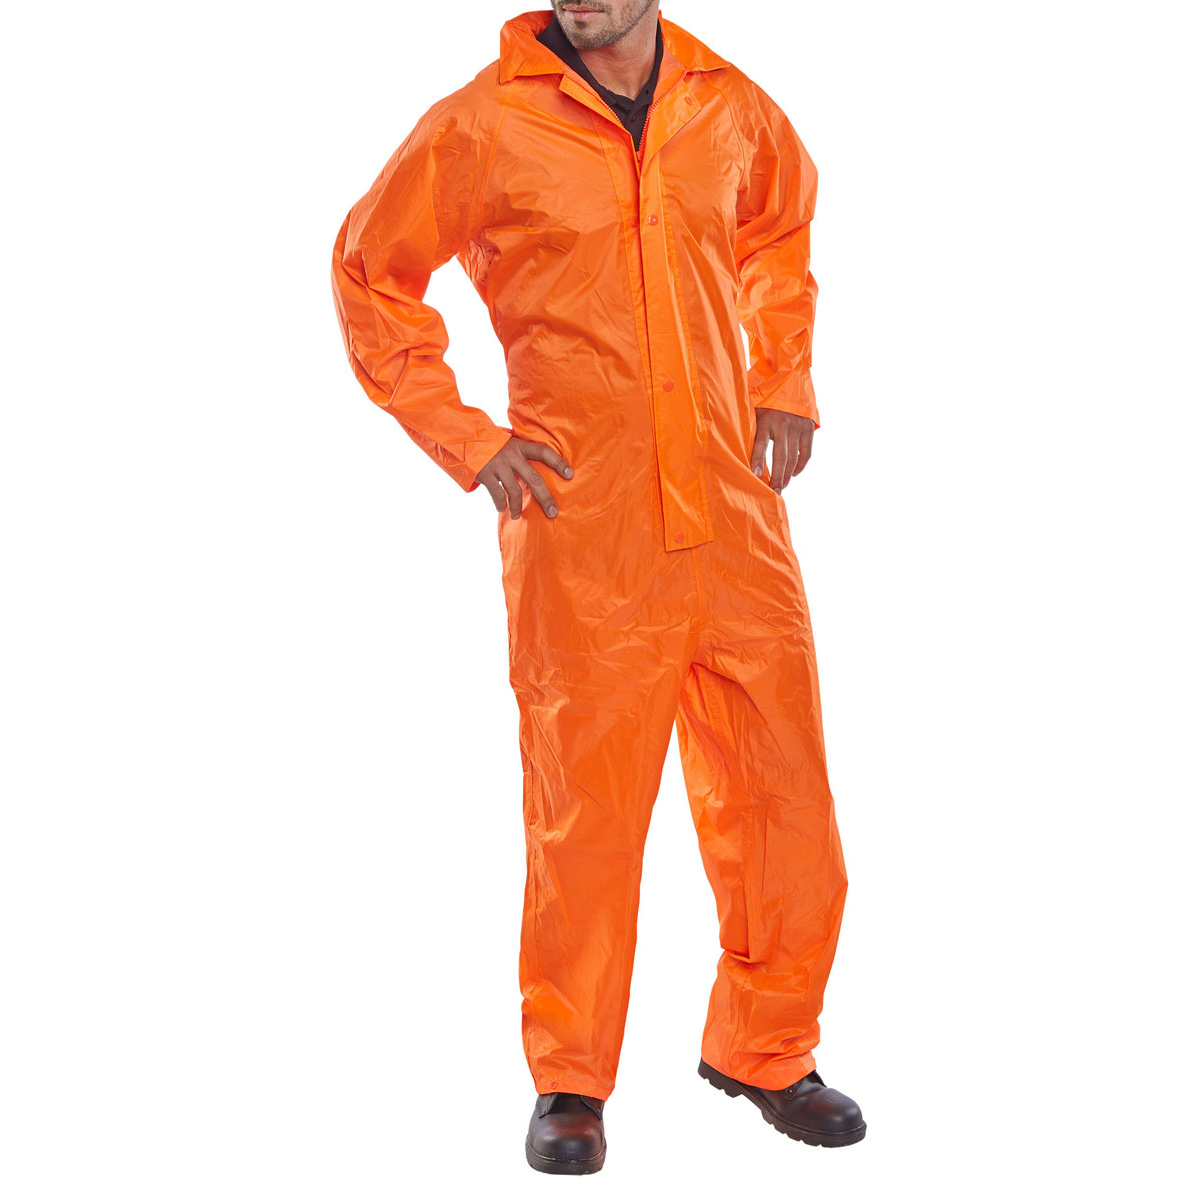 B-Dri Weatherproof Coveralls Nylon Large Orange Ref NBDCORL *Up to 3 Day Leadtime*